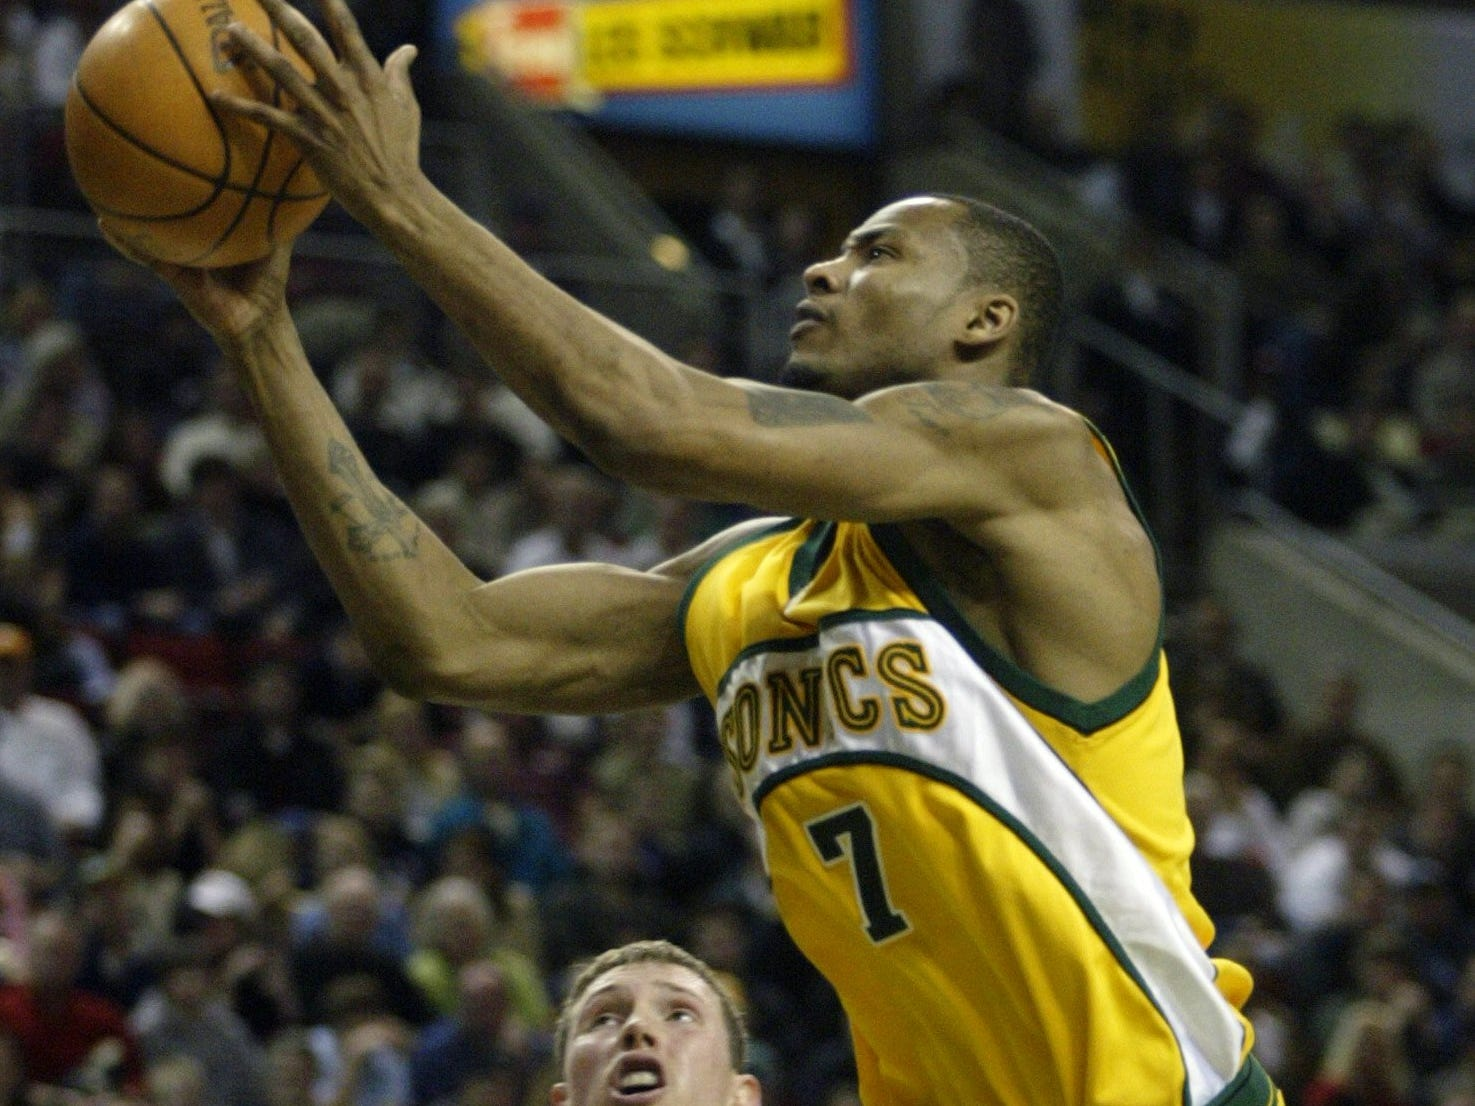 Rashard Lewis' 2005 Seattle SuperSonics uniform looked a lot better in green than the alternate yellow.